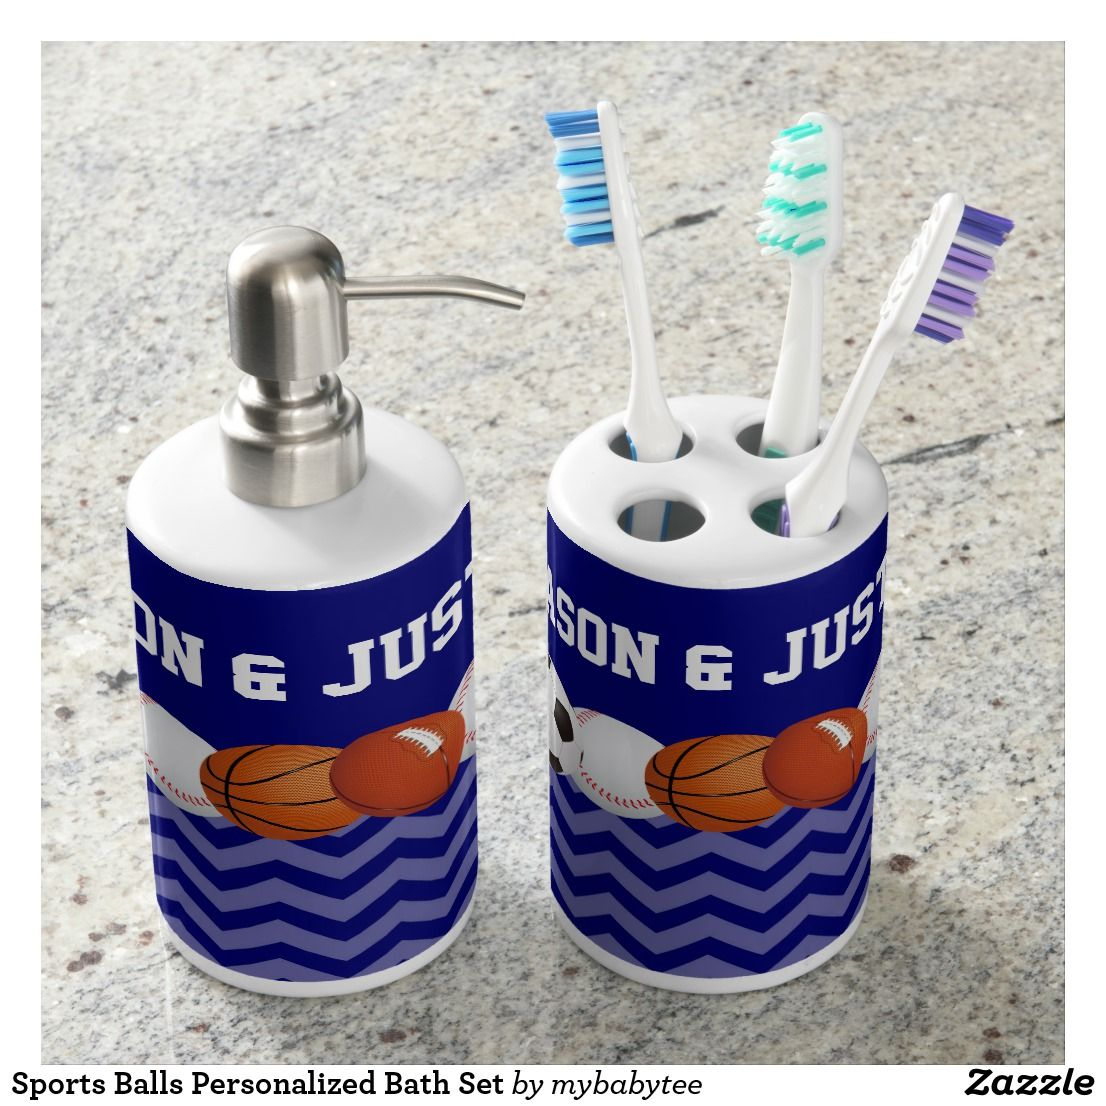 Sports Balls Personalized Bath Set | Bath Accessory Sets | Pinterest ...